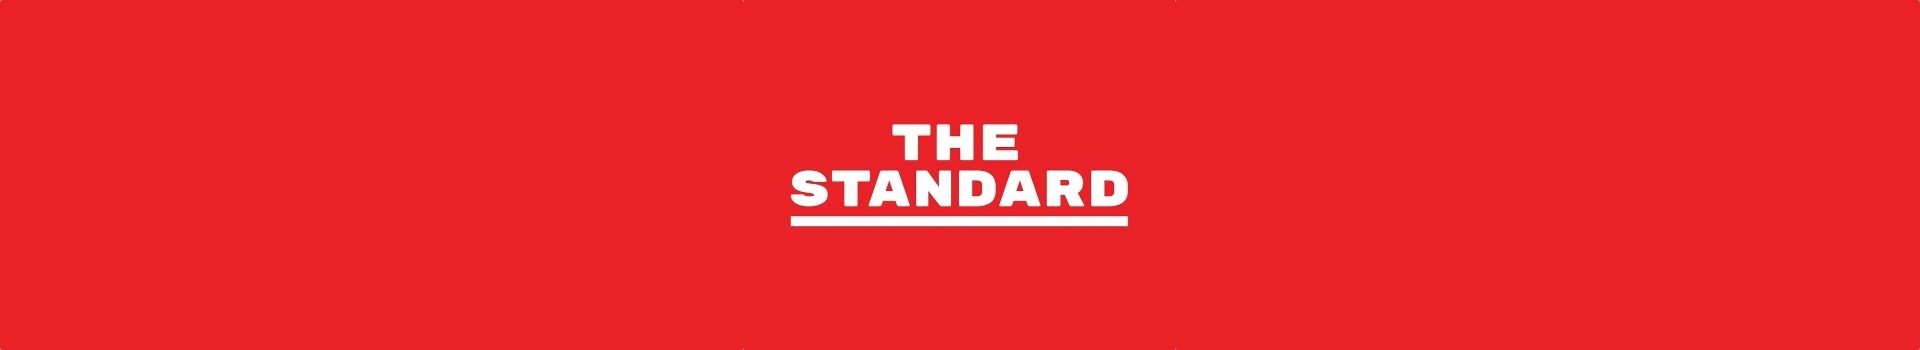 THE STANDARD cover photo